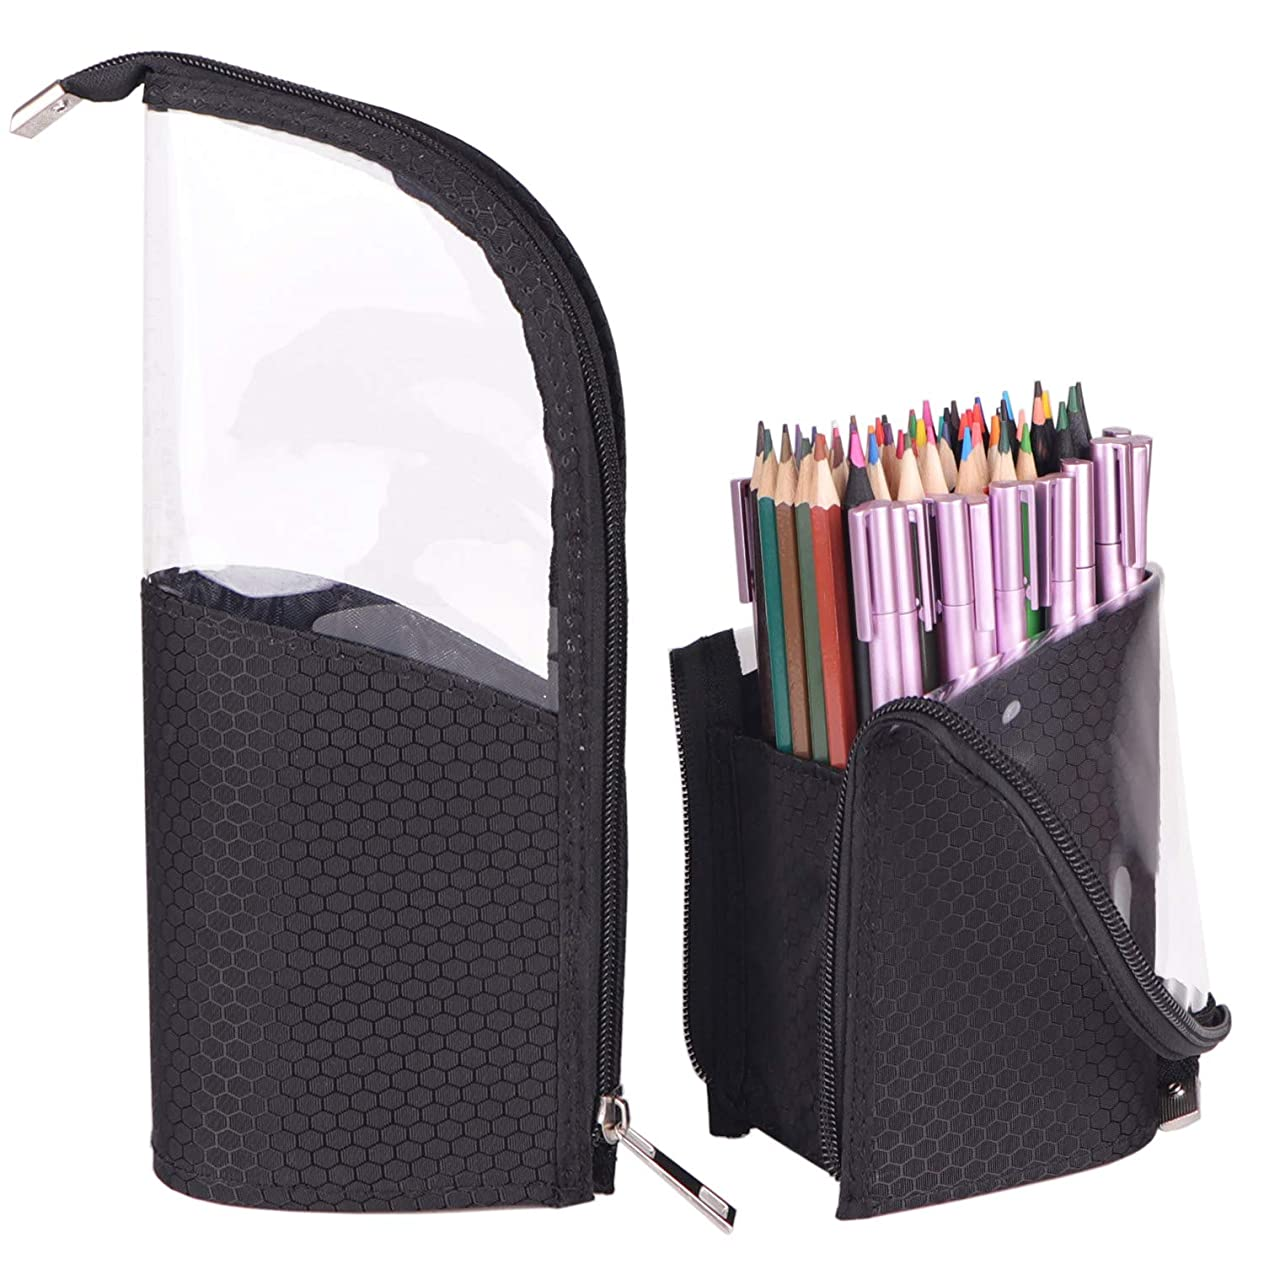 2 Pack Standing up Pencil case with 9 Elastics Slots, Standing Pen Brush Holder, 2-in-1 Travel Pencil Cosmetic Makeup Bag Travel Carry Case to Hold Fountain Pen Gel Pen Pencils Cosmetic Makeup Brushes qjvijopw104